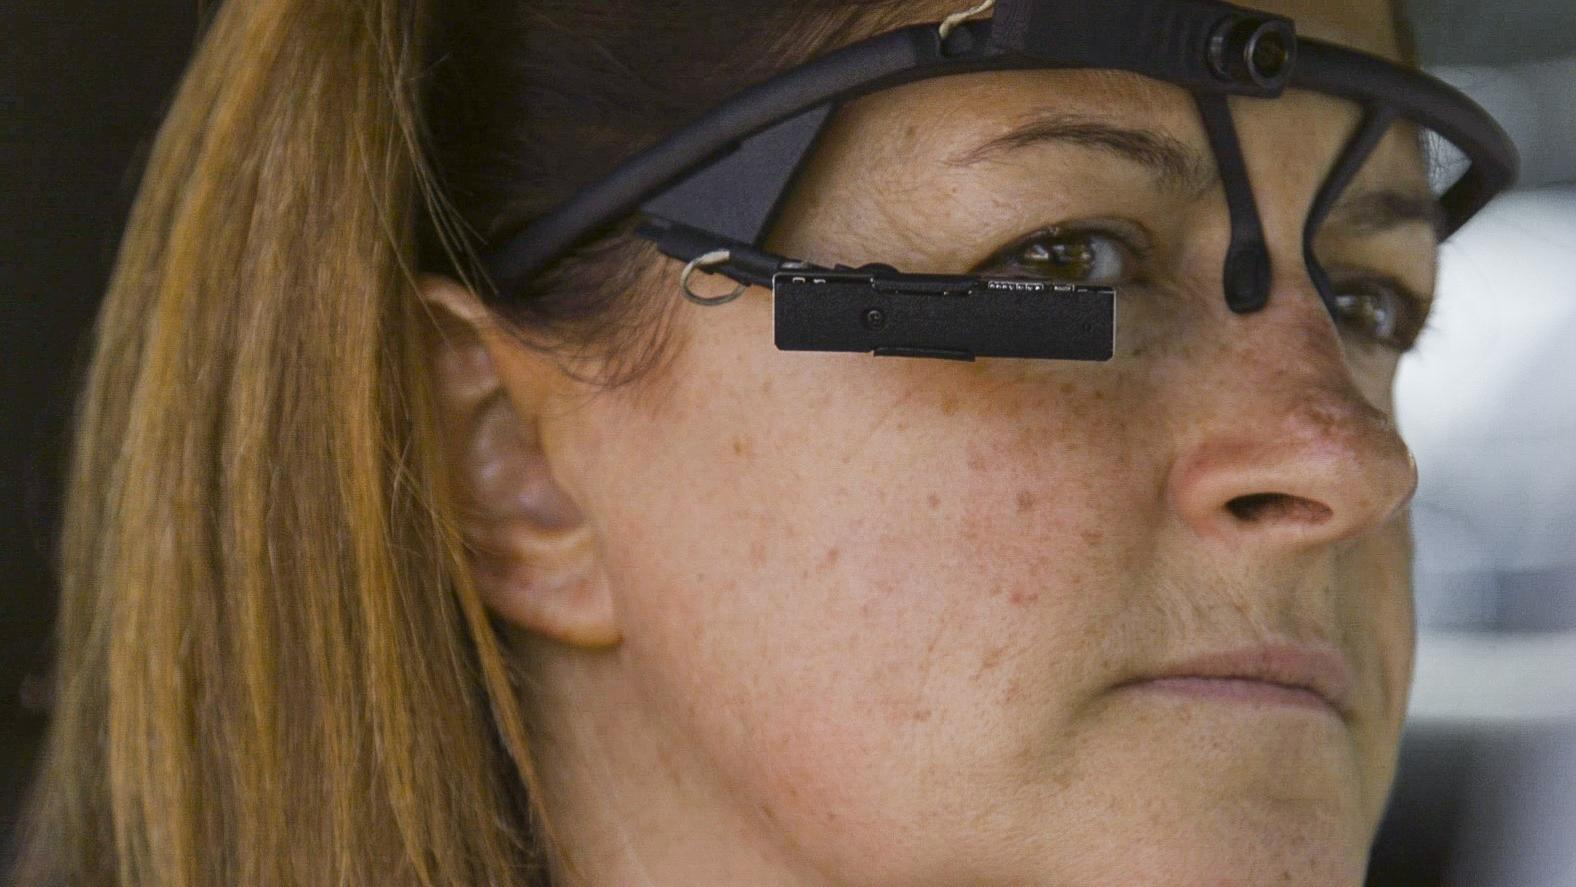 Eye-tracking driver challenge launched | Goldsmiths